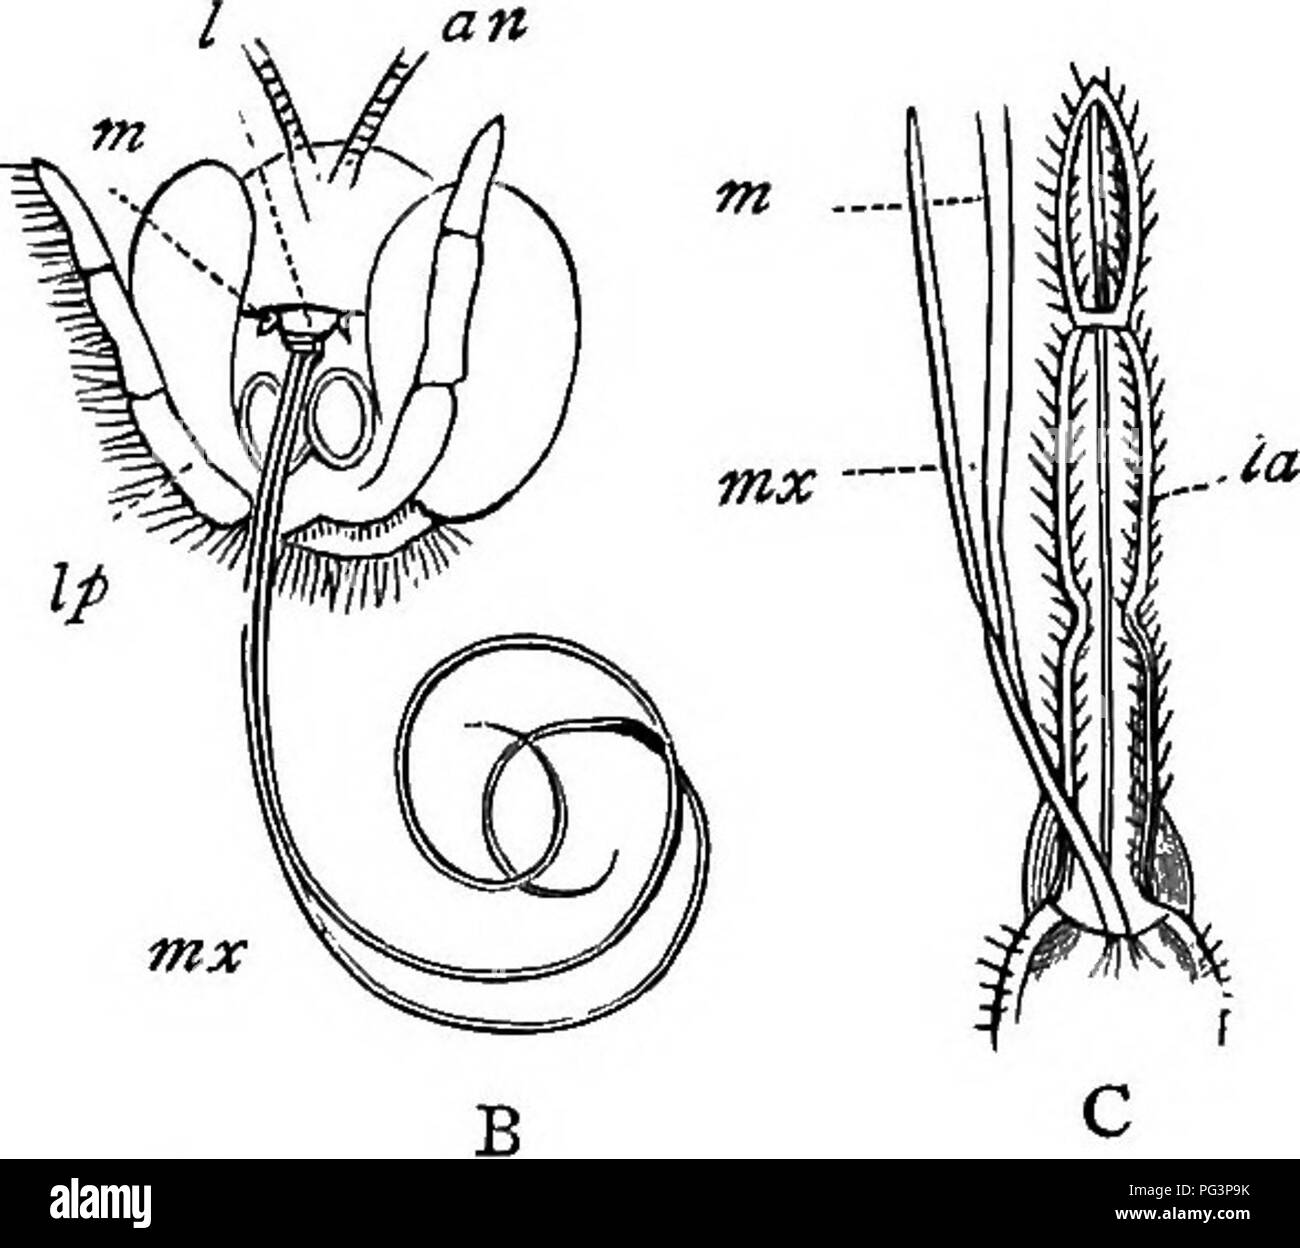 . A text-book of agricultural zoology. Zoology, Economic. Pig. 60.—Mouth Parts of Insect3. A, Biting mouth parts; b, sucking, and o, piercing mouths: I, upper lip; m, man- dibles ; ma:, maxillEe; mp, maxillary palpi; Za, lower lip; Zp, labial palpi; a^i, an- tennae. (Nicholson.) prevents those insects possessing it from doing any damage. Those groups with this latter type of oral structure aid more or less in the fertilisation of plants. It will be chiefly, then, amongst the biting and piercing mouthed insects that the injurious species will be found. But we must bear in mind that the suctoria Stock Photo